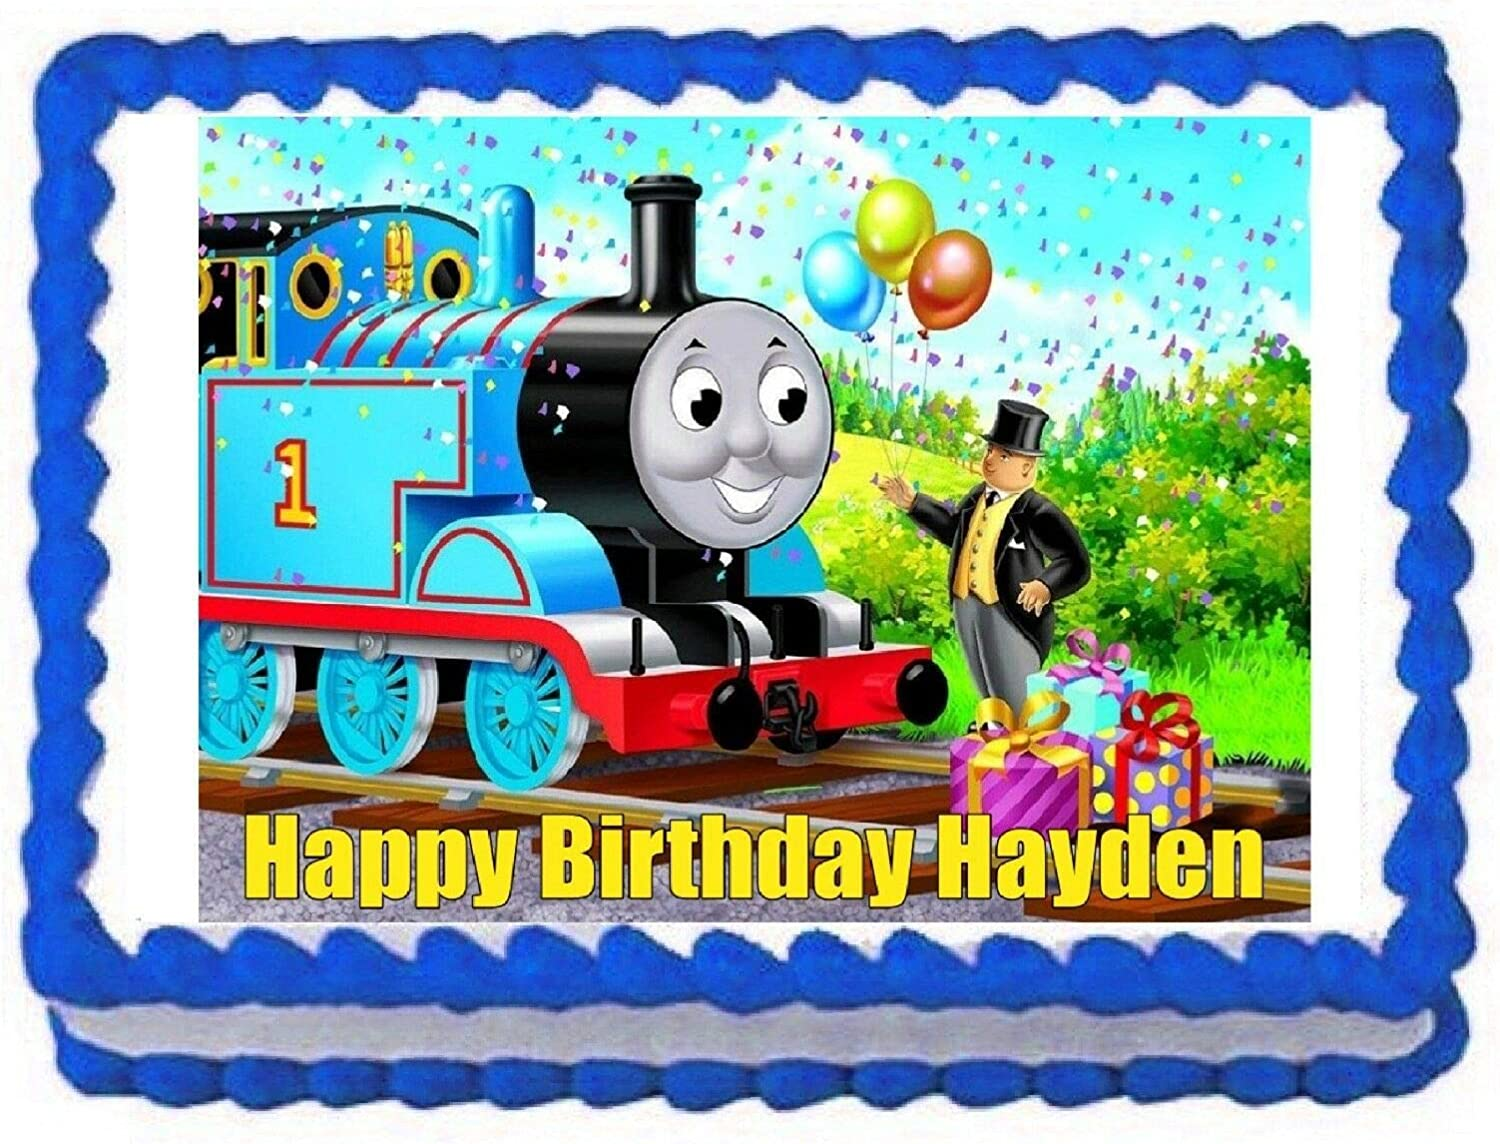 Thomas and Easy-to-use Friends Train Image Edible Topper Sales for sale Cake